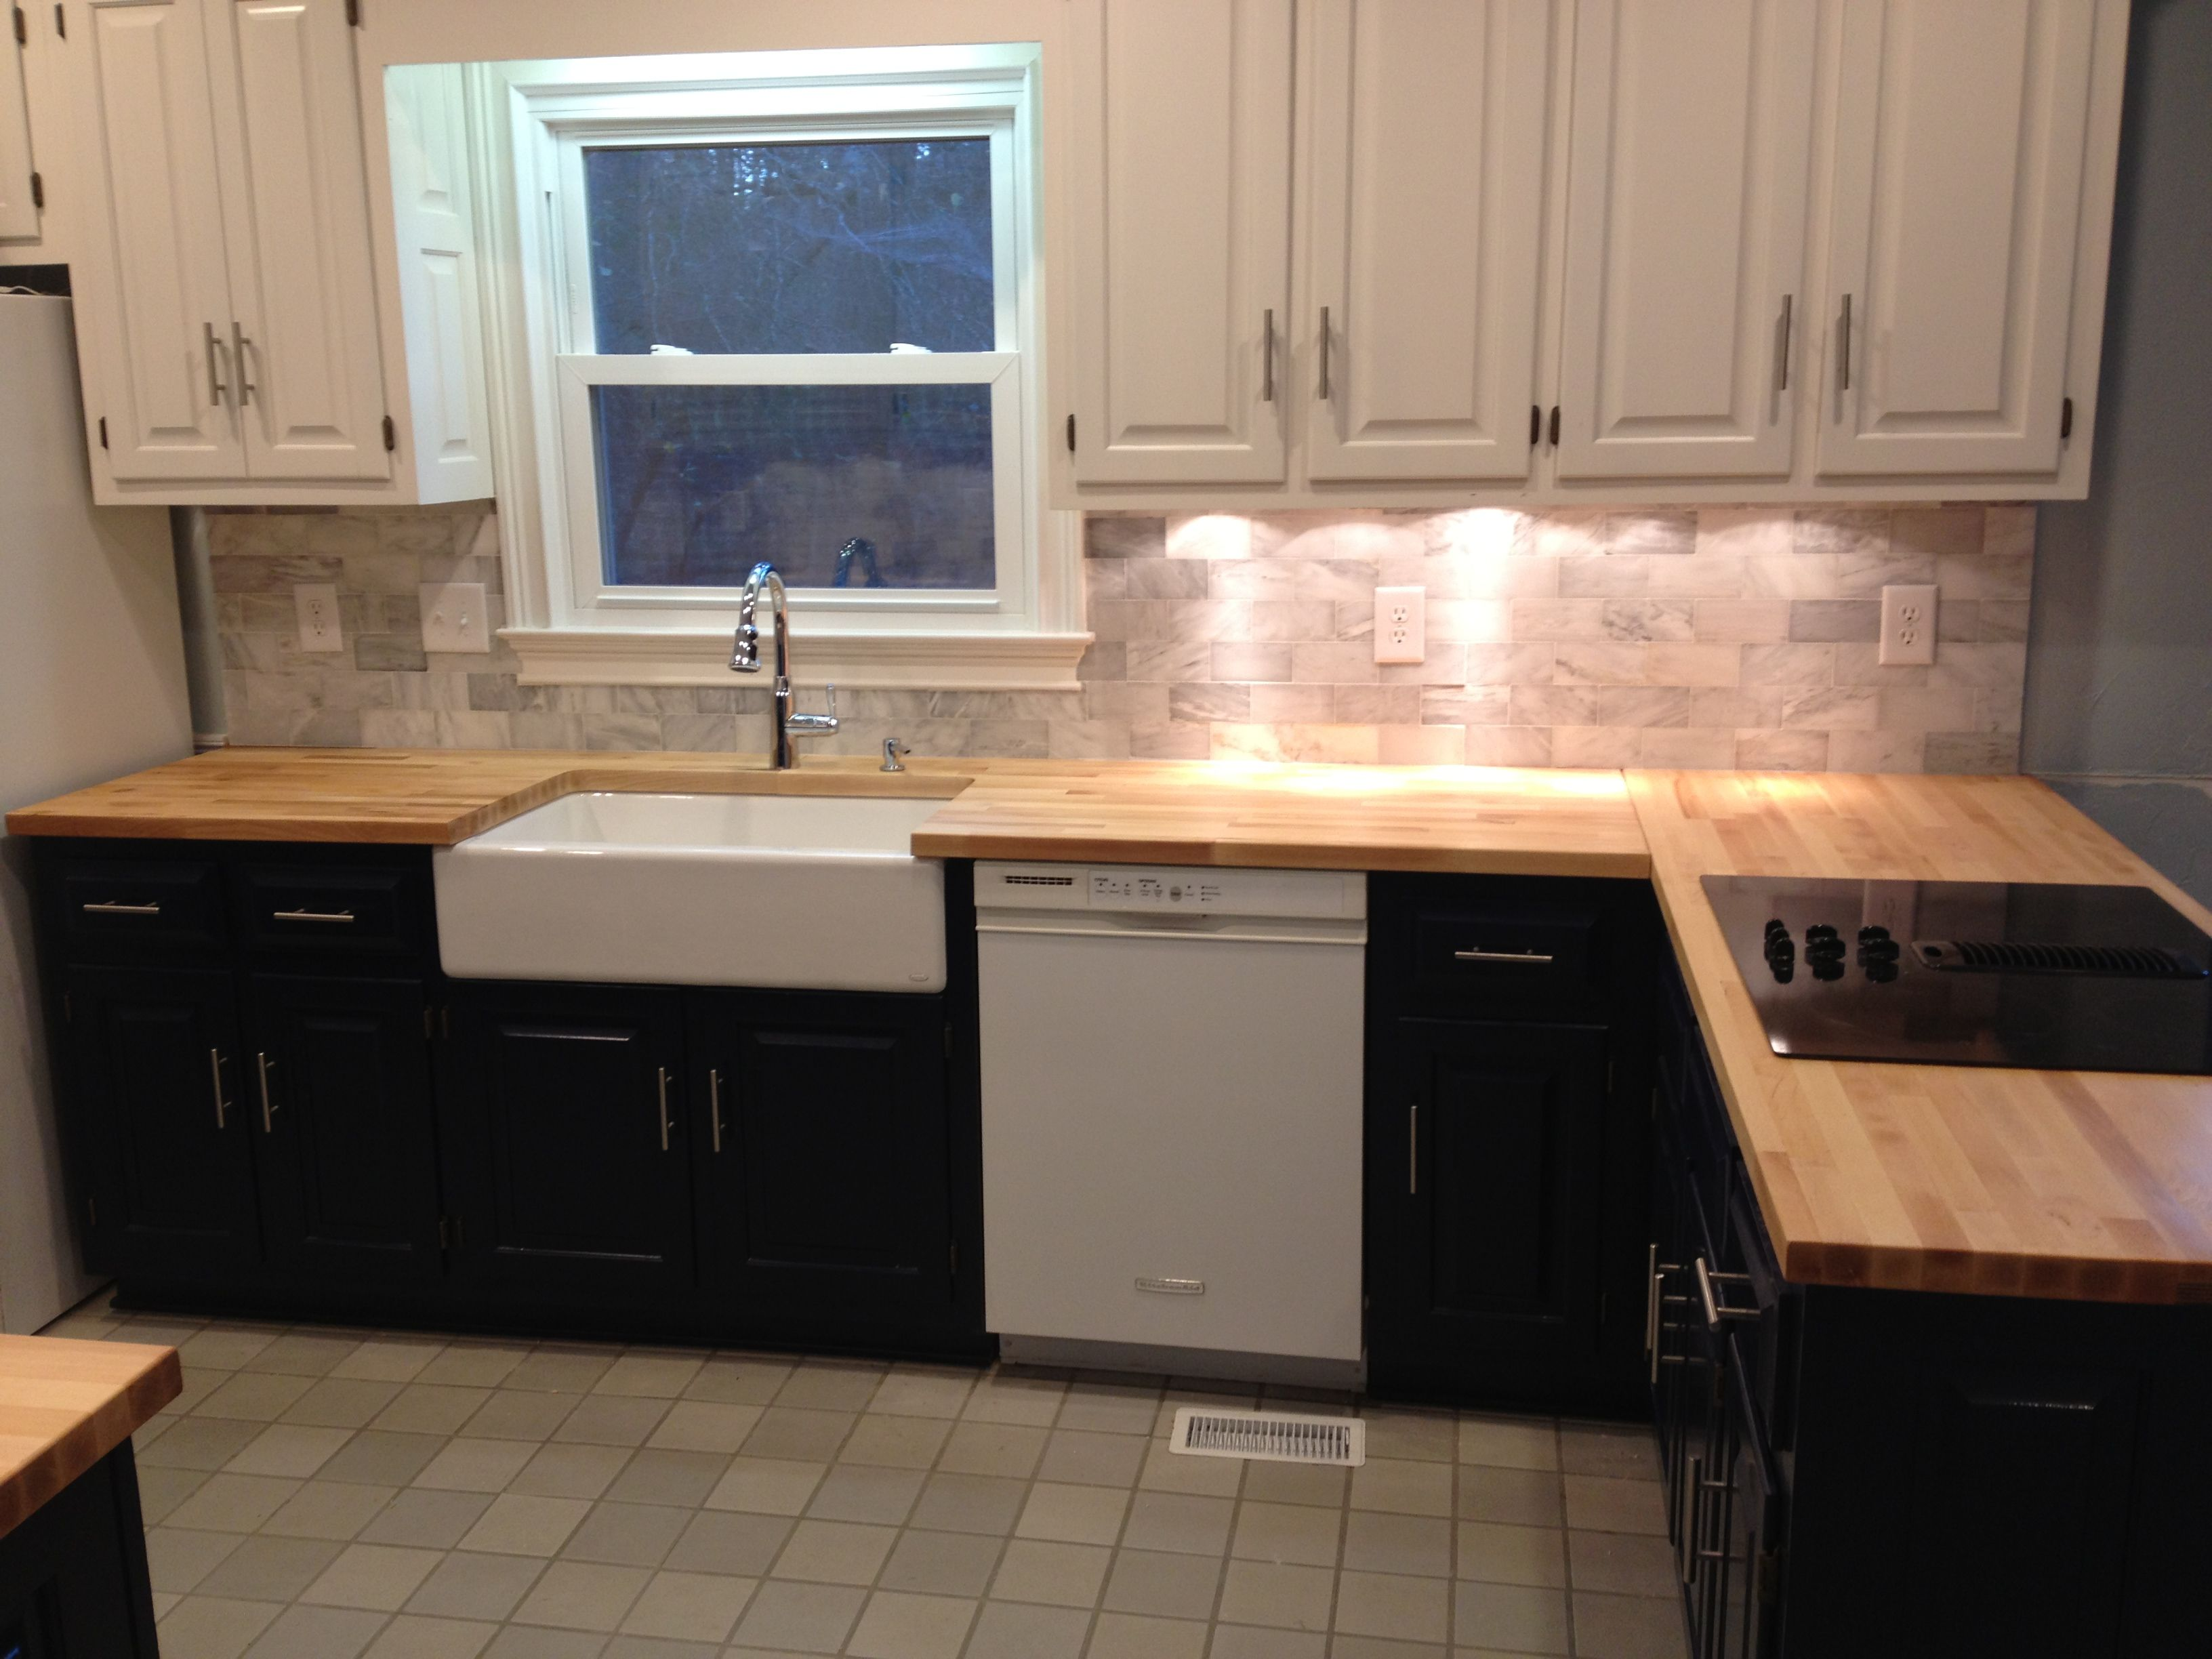 Kitchen Appliances Brooklyn Ninja Mega System 1500 Recipes Remodel We Used Butcher Block Counter Tops